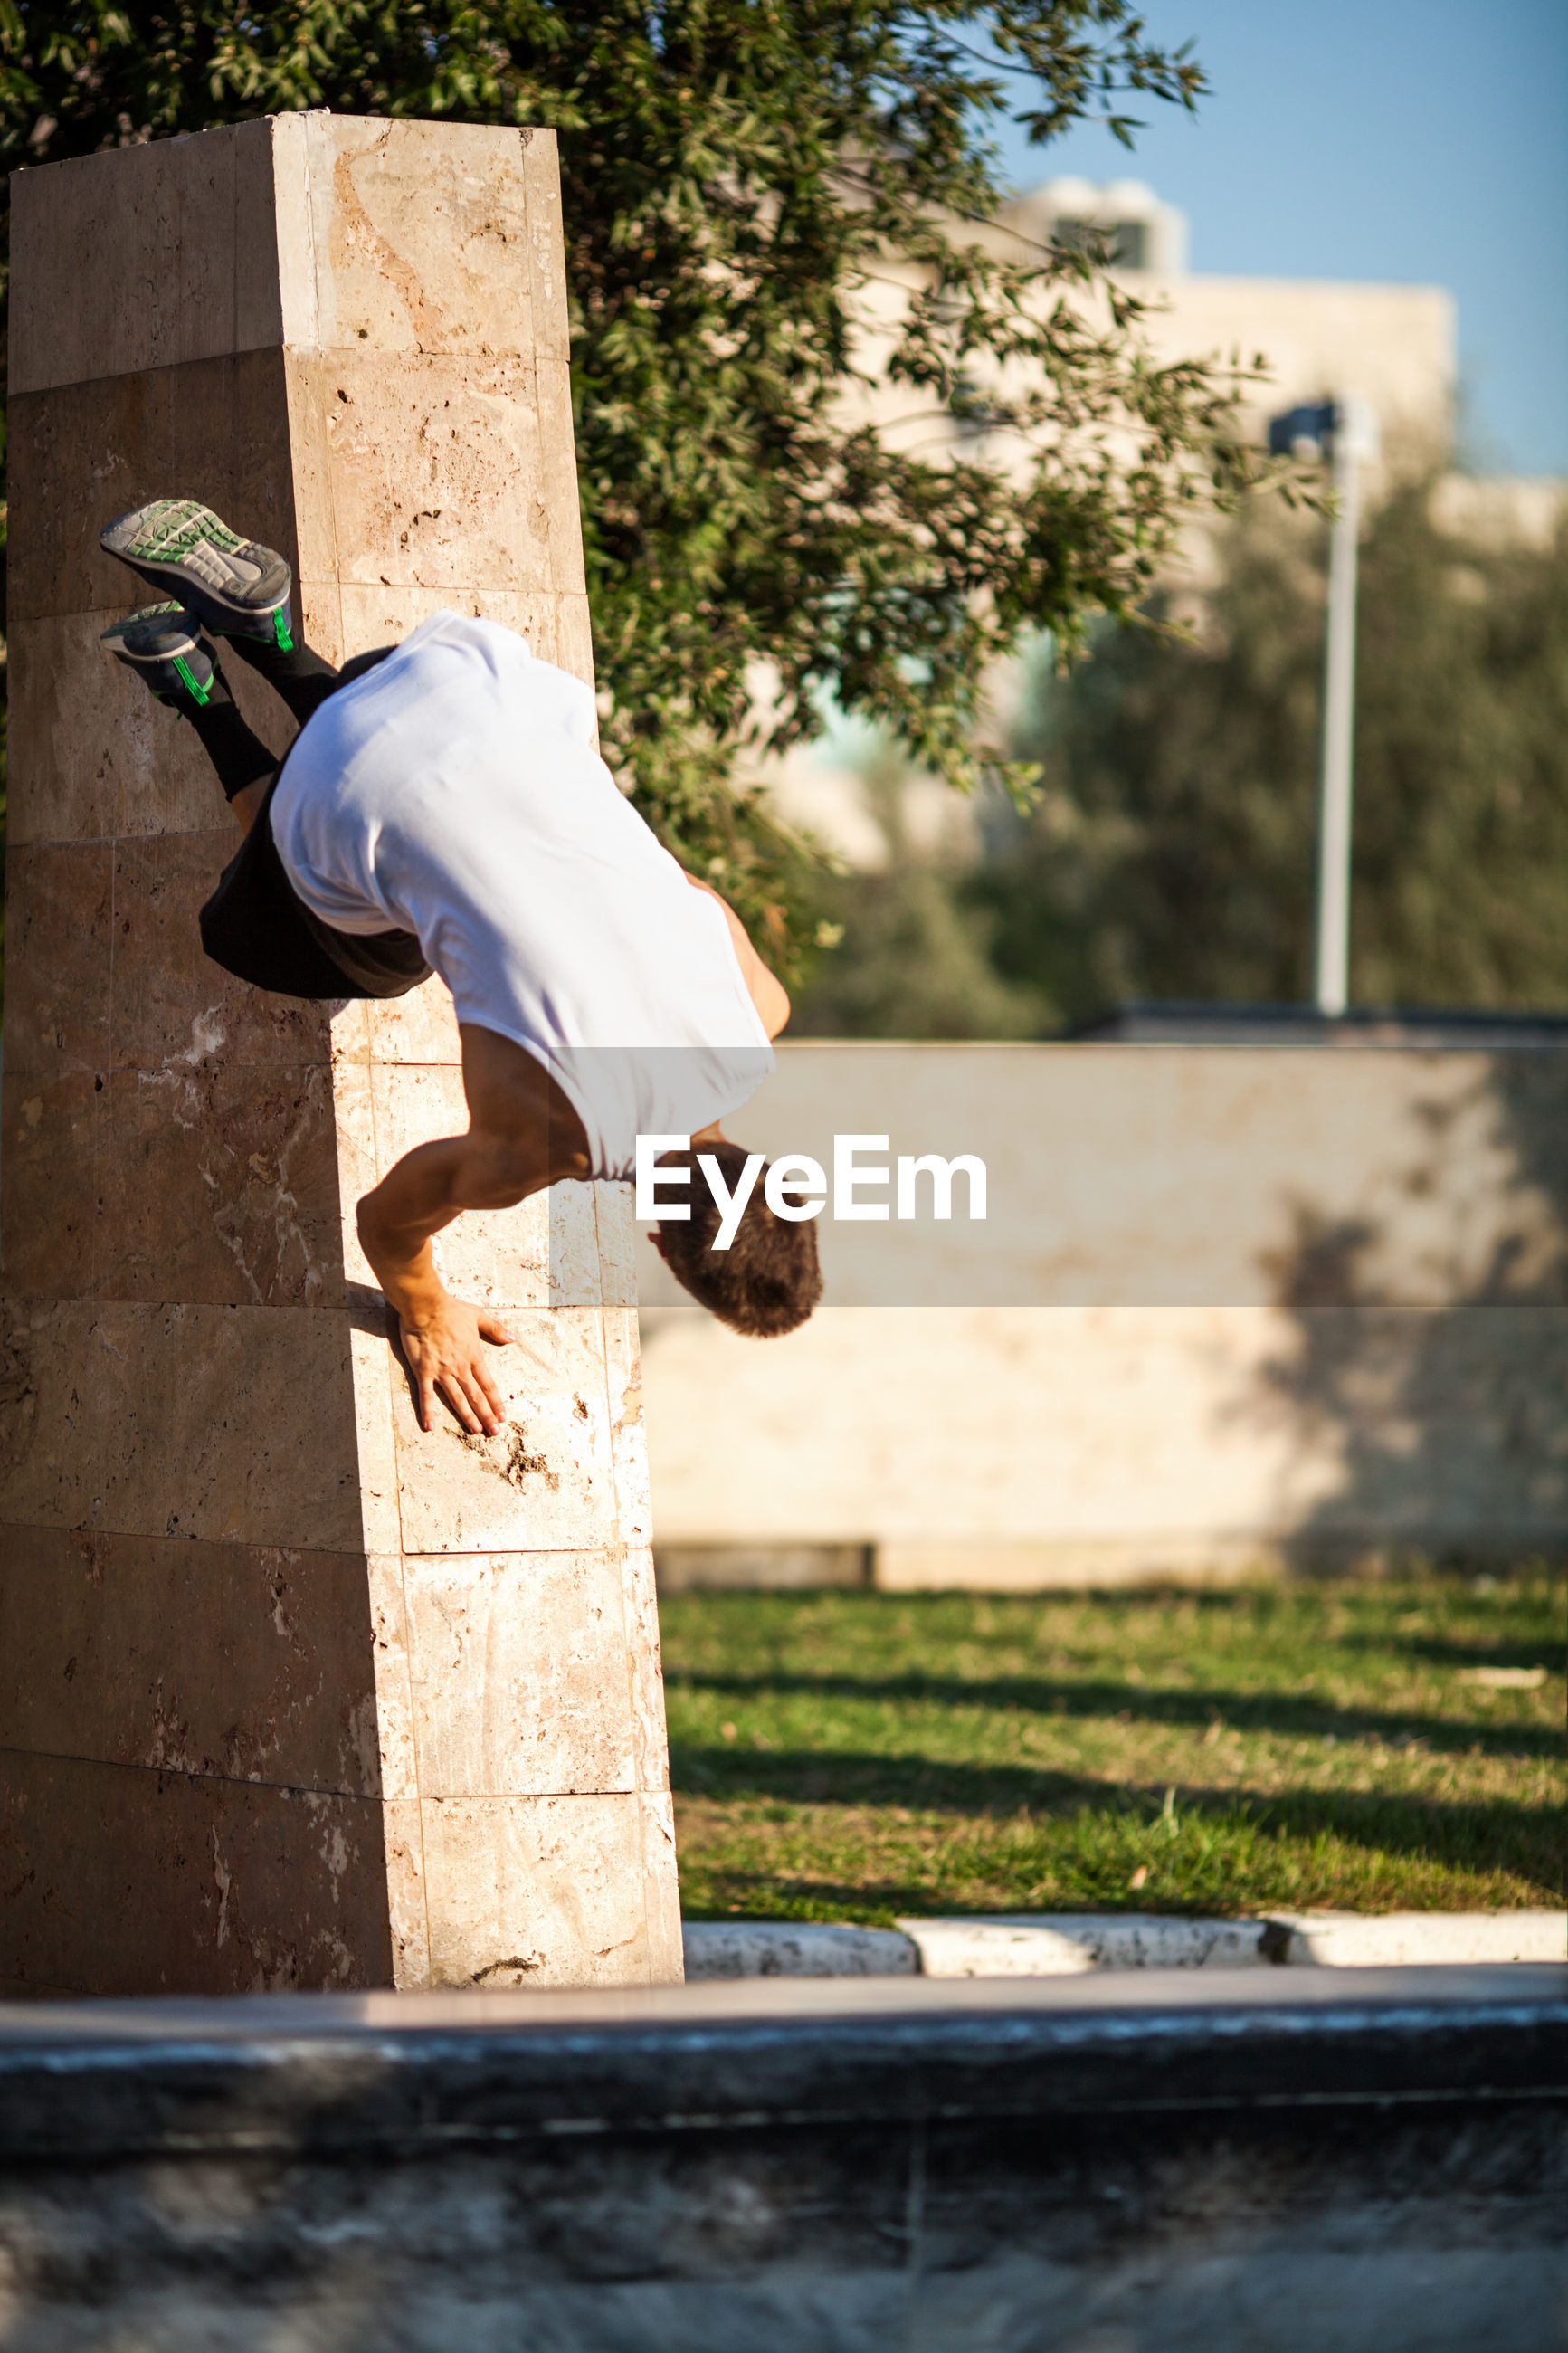 Young man doing stunt on retaining wall in park